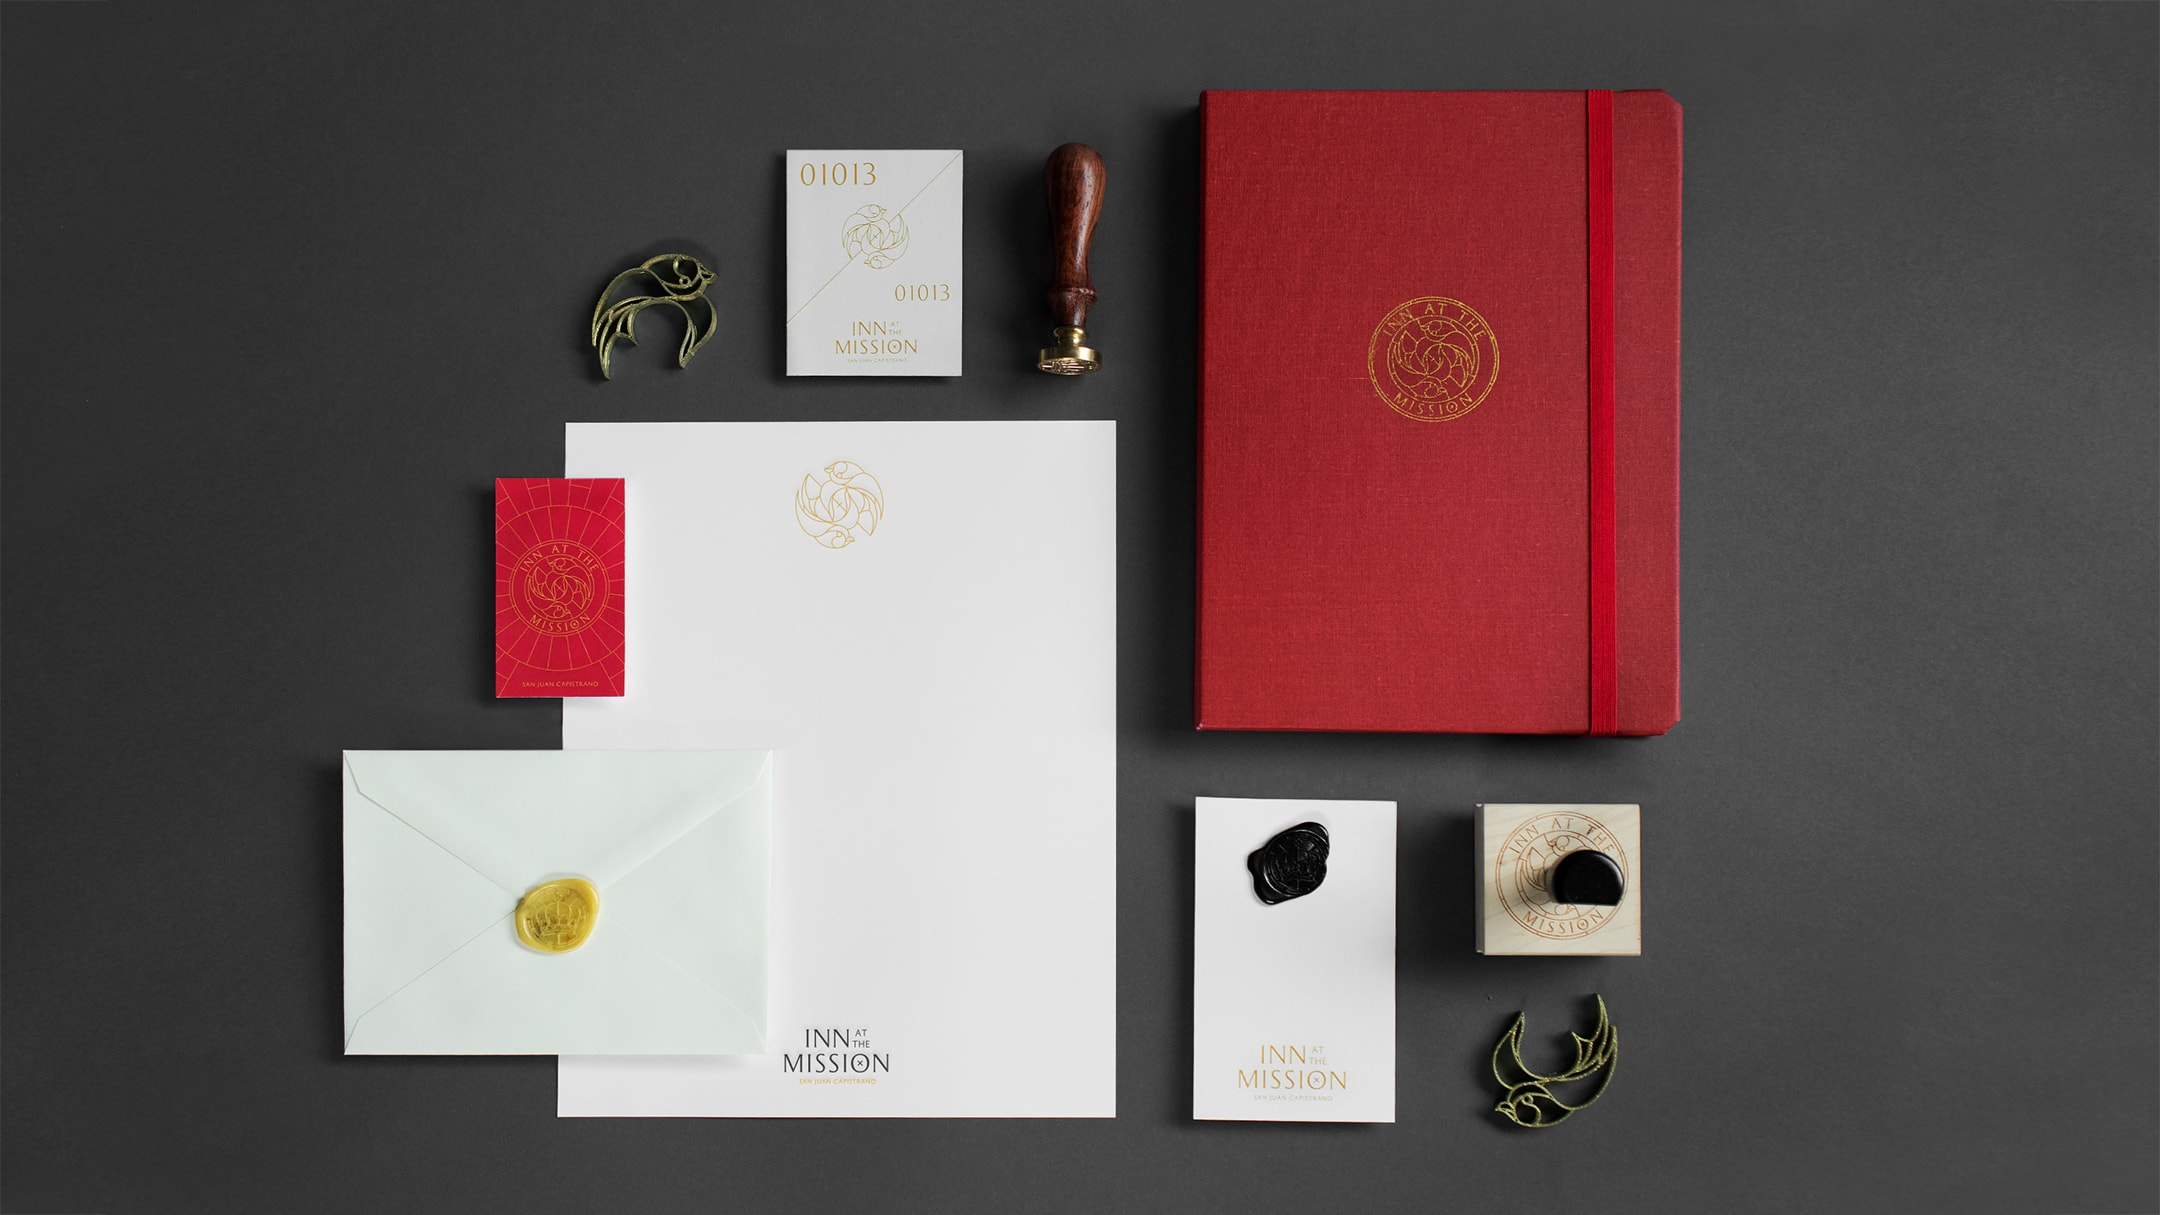 A sample of the hospitality branding work done for Inn At The Mission including sales collateral, notebook, notepads, wax stamp